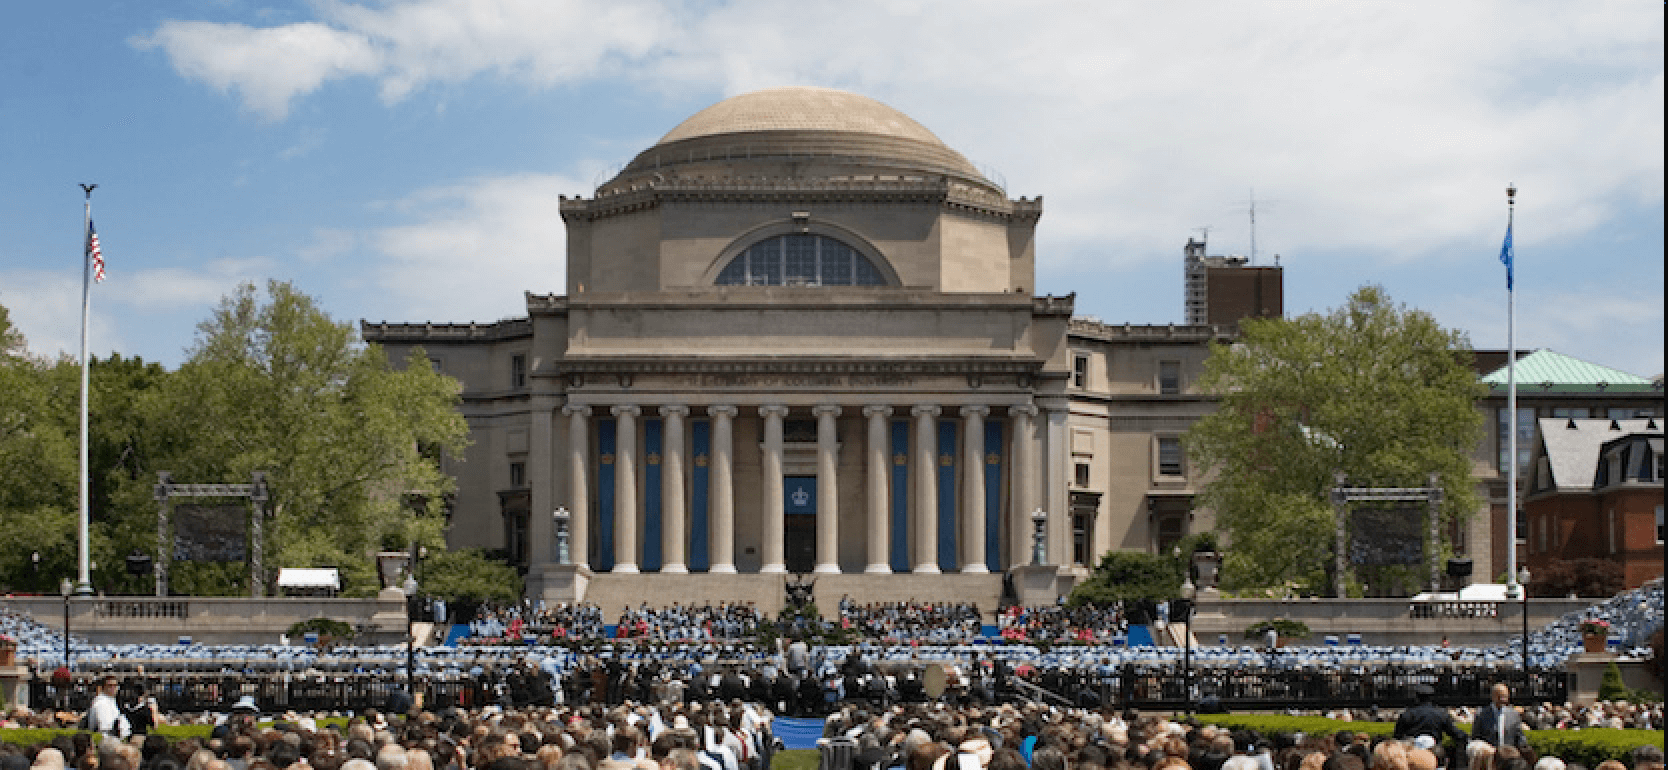 Explore Columbia University in the City of New York